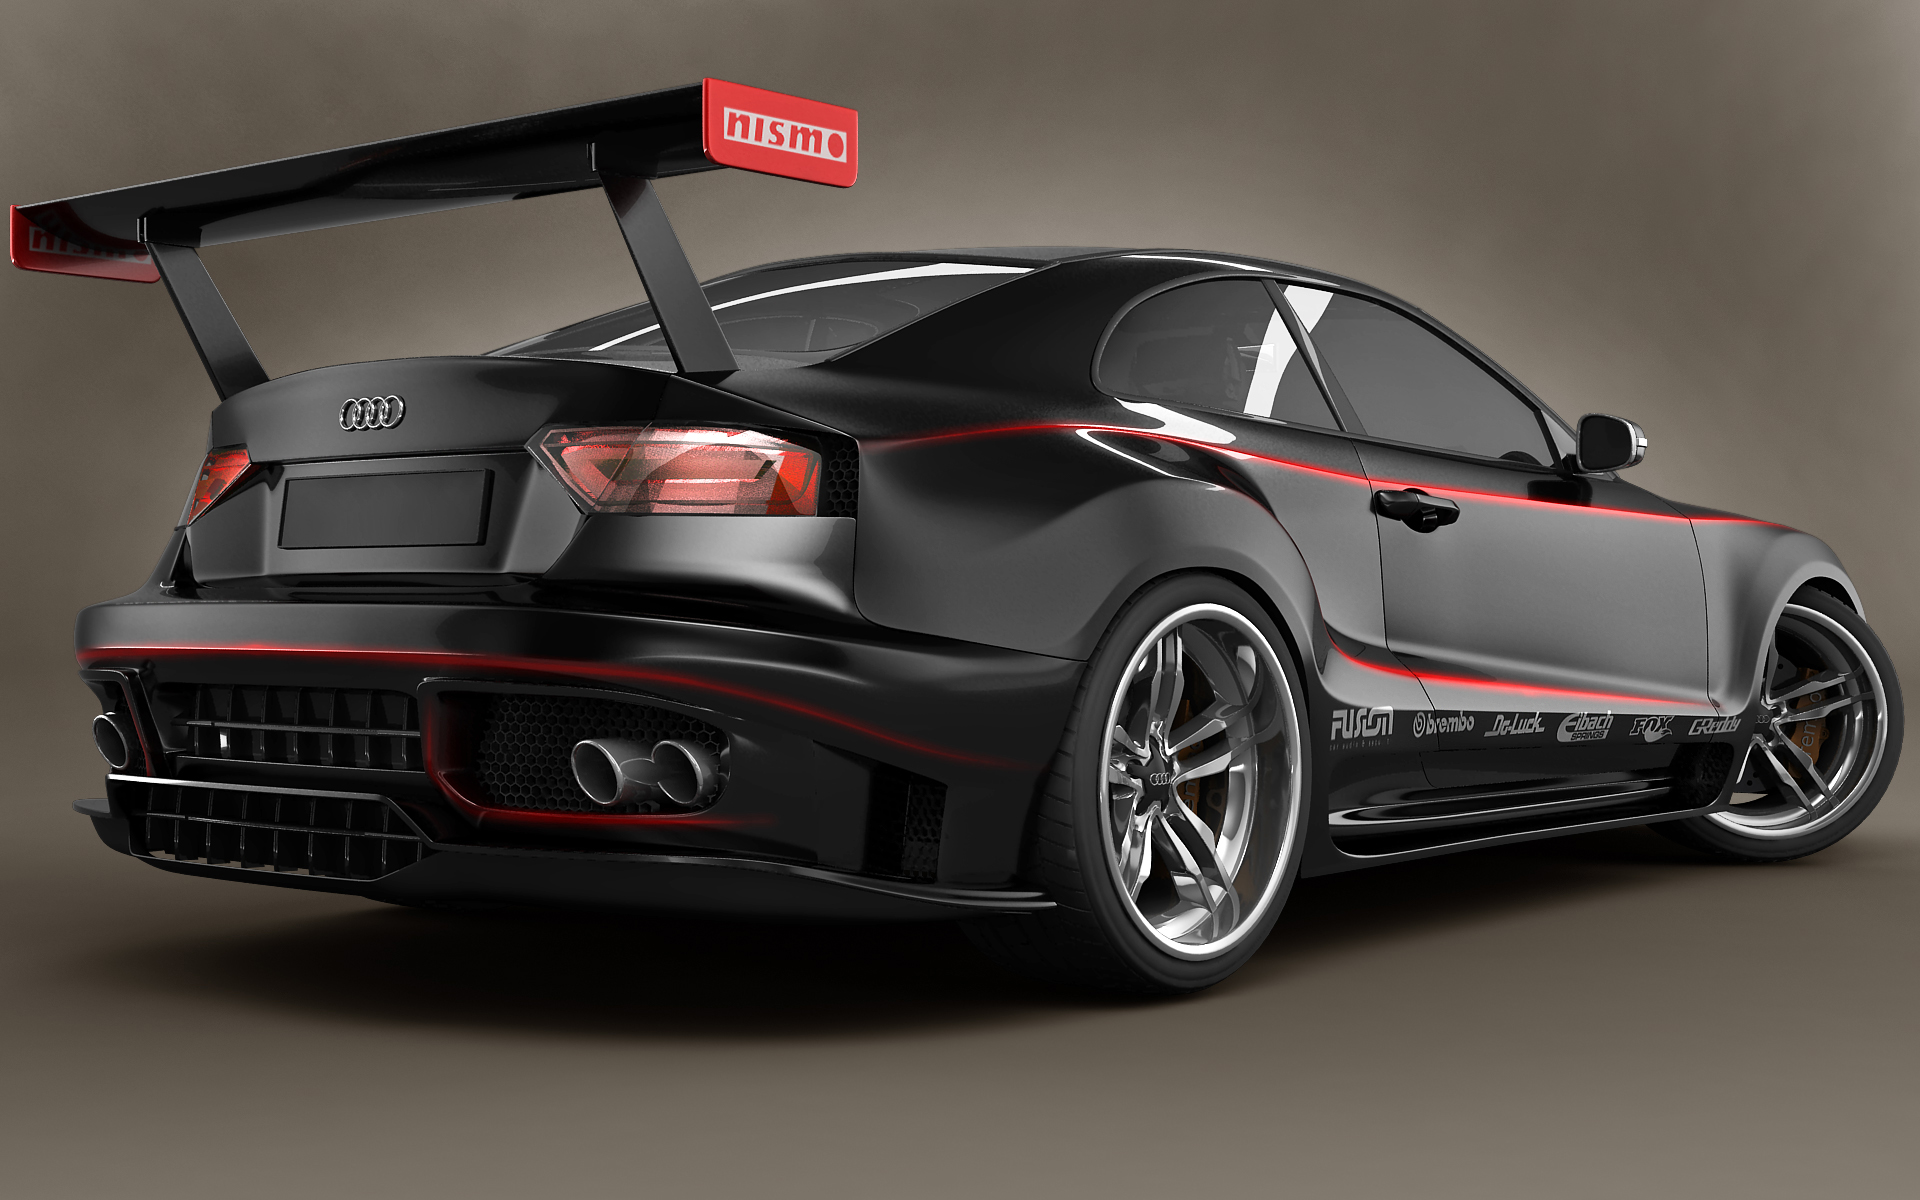 Audi A5 Gtr Back By Stefanmarius On Deviantart